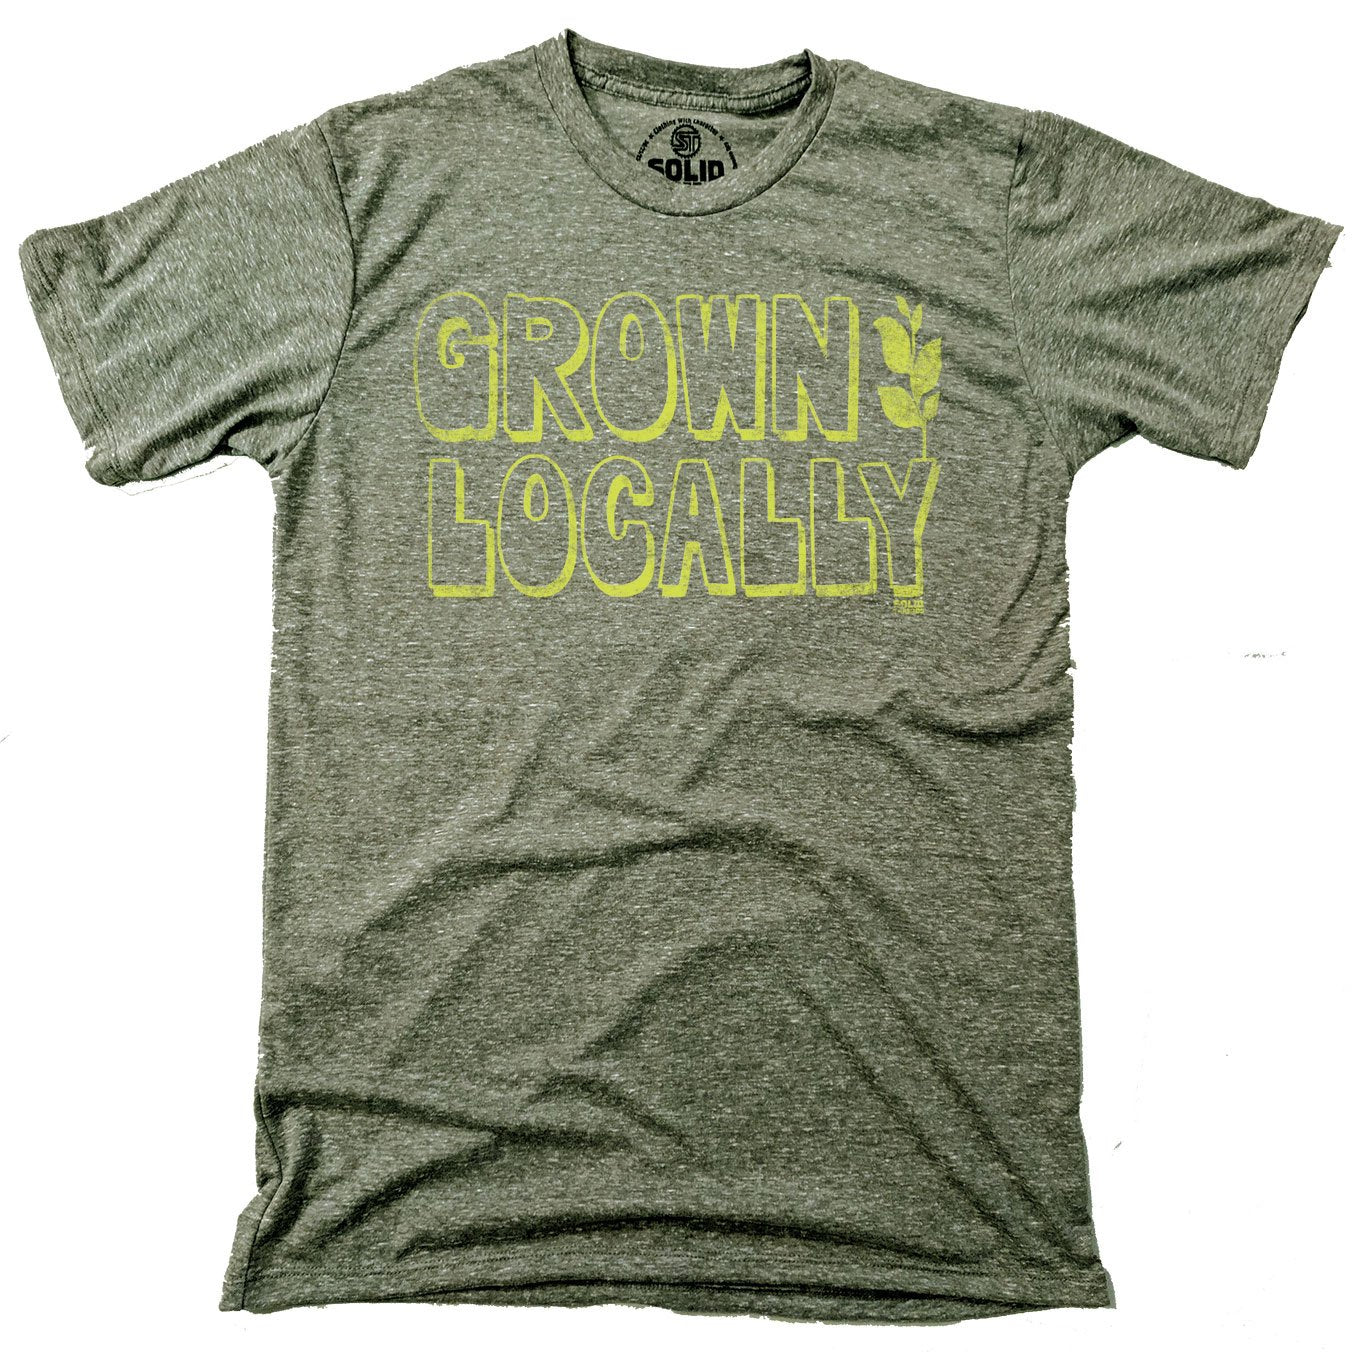 Grown Locally Vintage Inspired T-shirt | SOLID THREADS